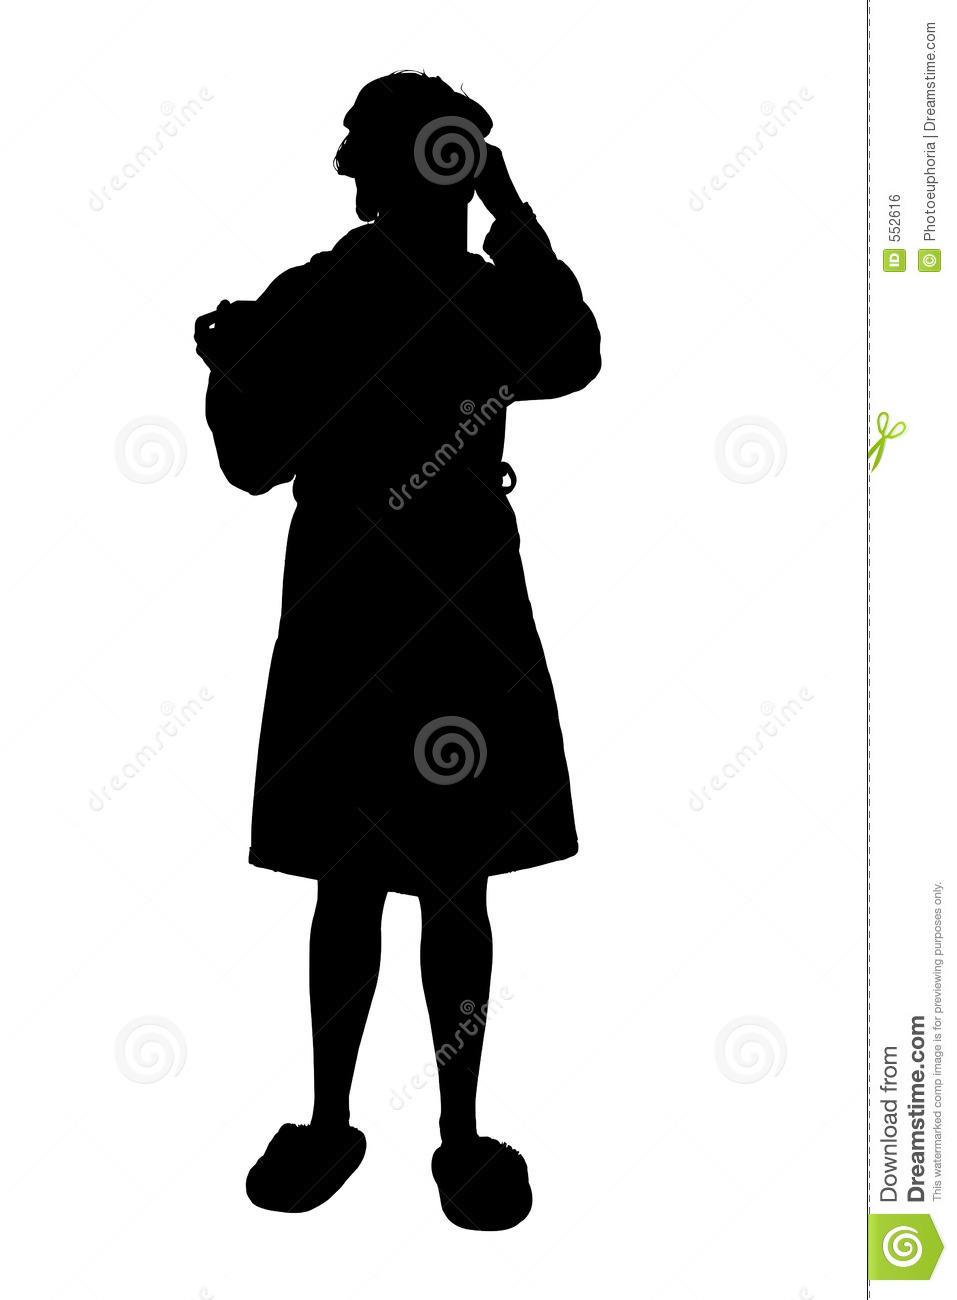 Silhouette With Clipping Path Of Woman In Robe Blowing Nose Royalty ...